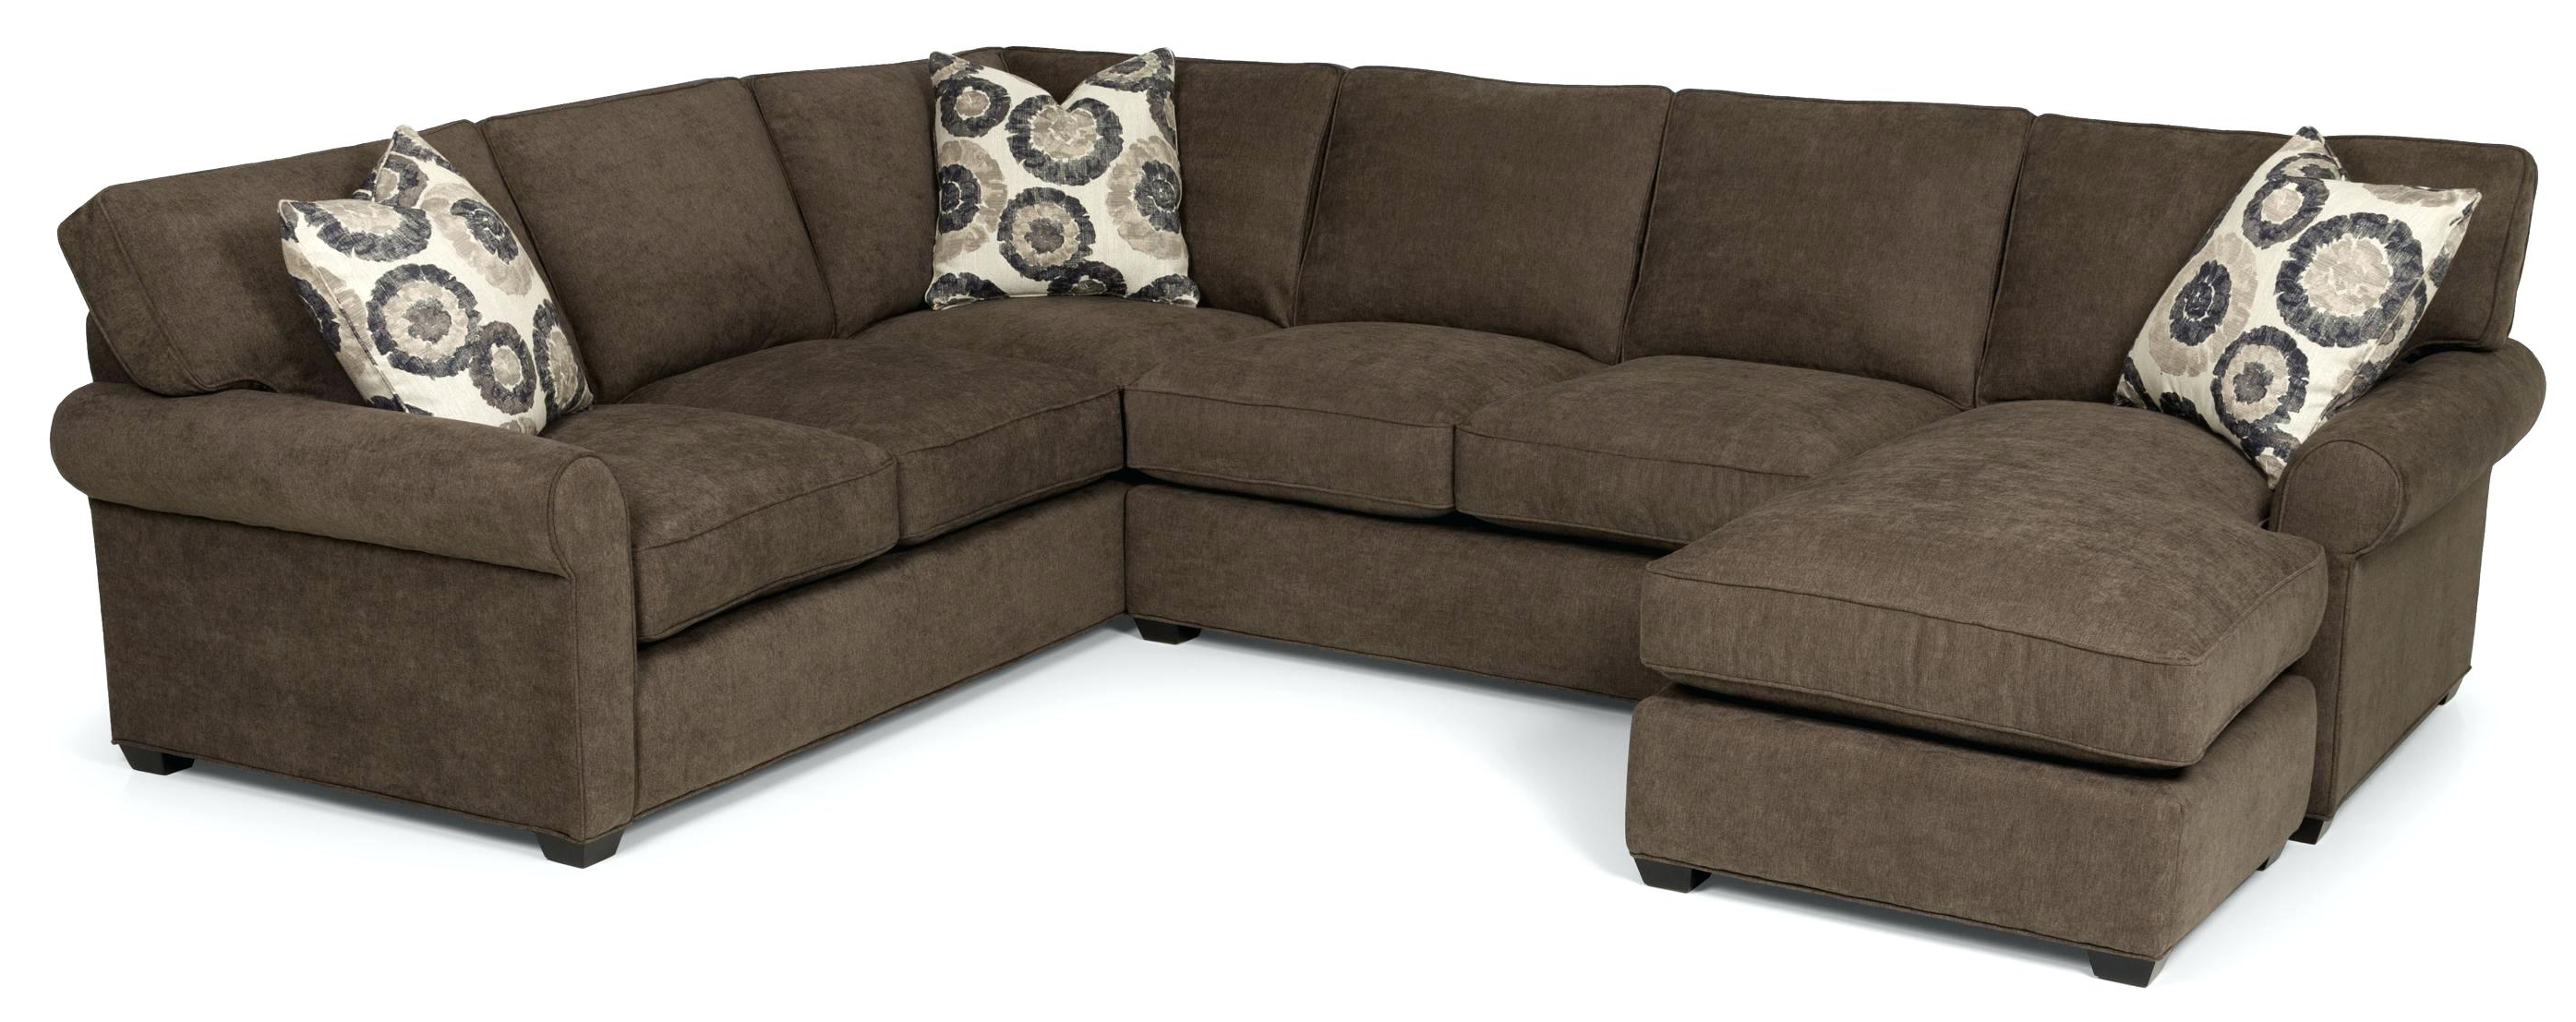 Most Recent 2 Piece Sectional Sofa With Chaise 2 Piece Sectional With Chaise Intended For Jobs Oat 2 Piece Sectionals With Left Facing Chaise (View 13 of 20)